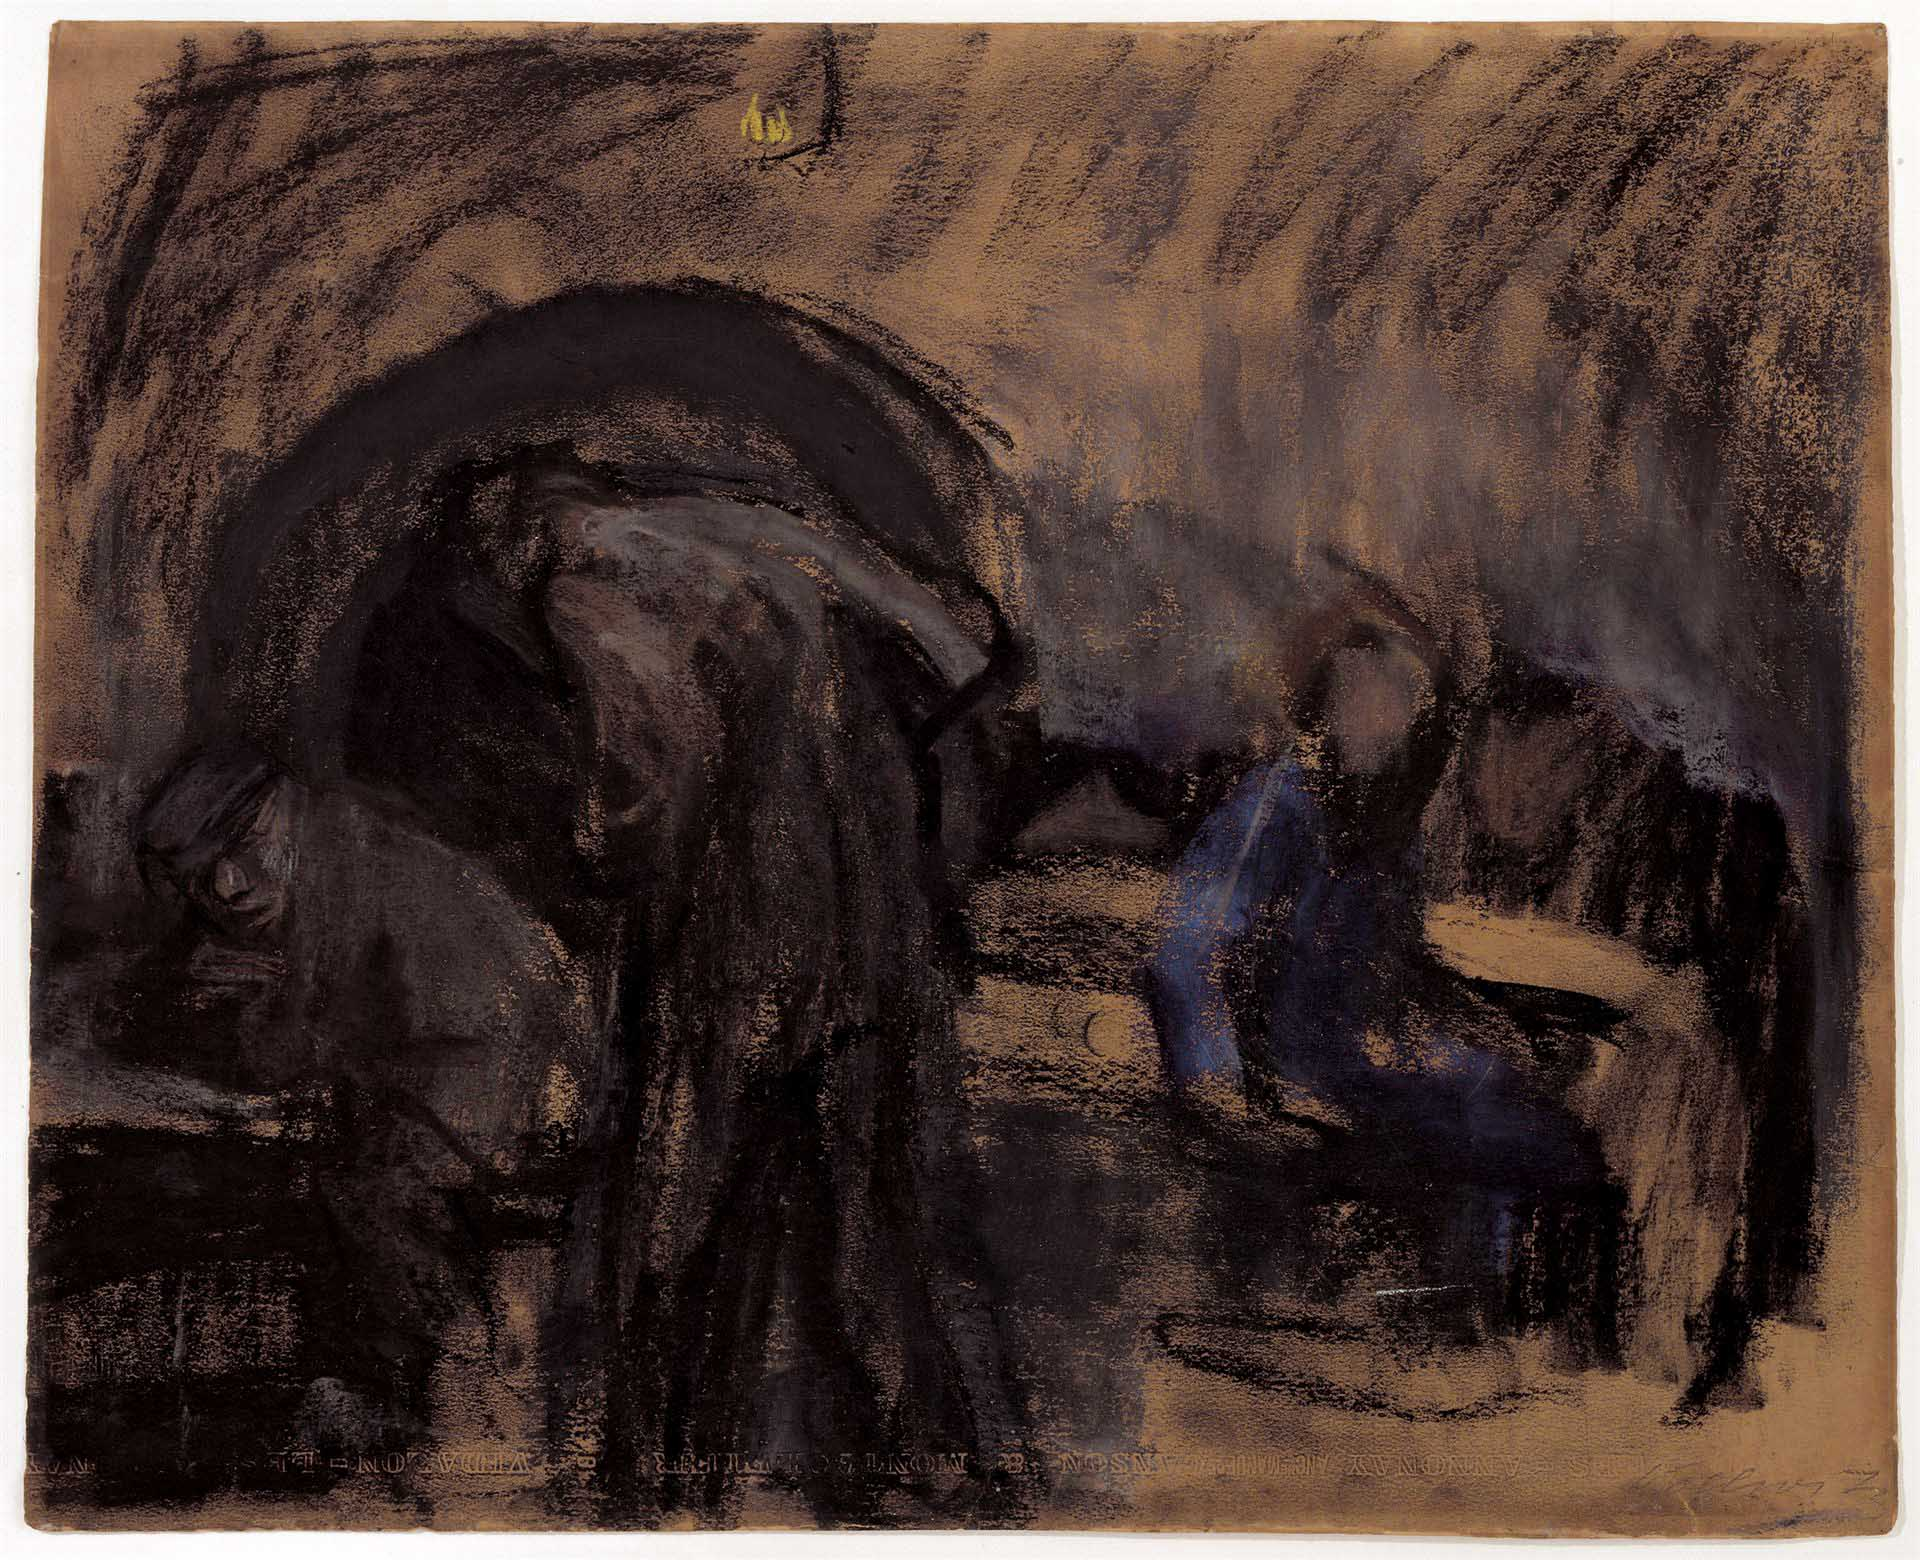 Käthe Kollwitz, Parisian Cellar Tavern, 1904, coloured chalk on ochre-coloured Canson drawing cardboard, NT (277a), Cologne Kollwitz Collection © Käthe Kollwitz Museum Köln